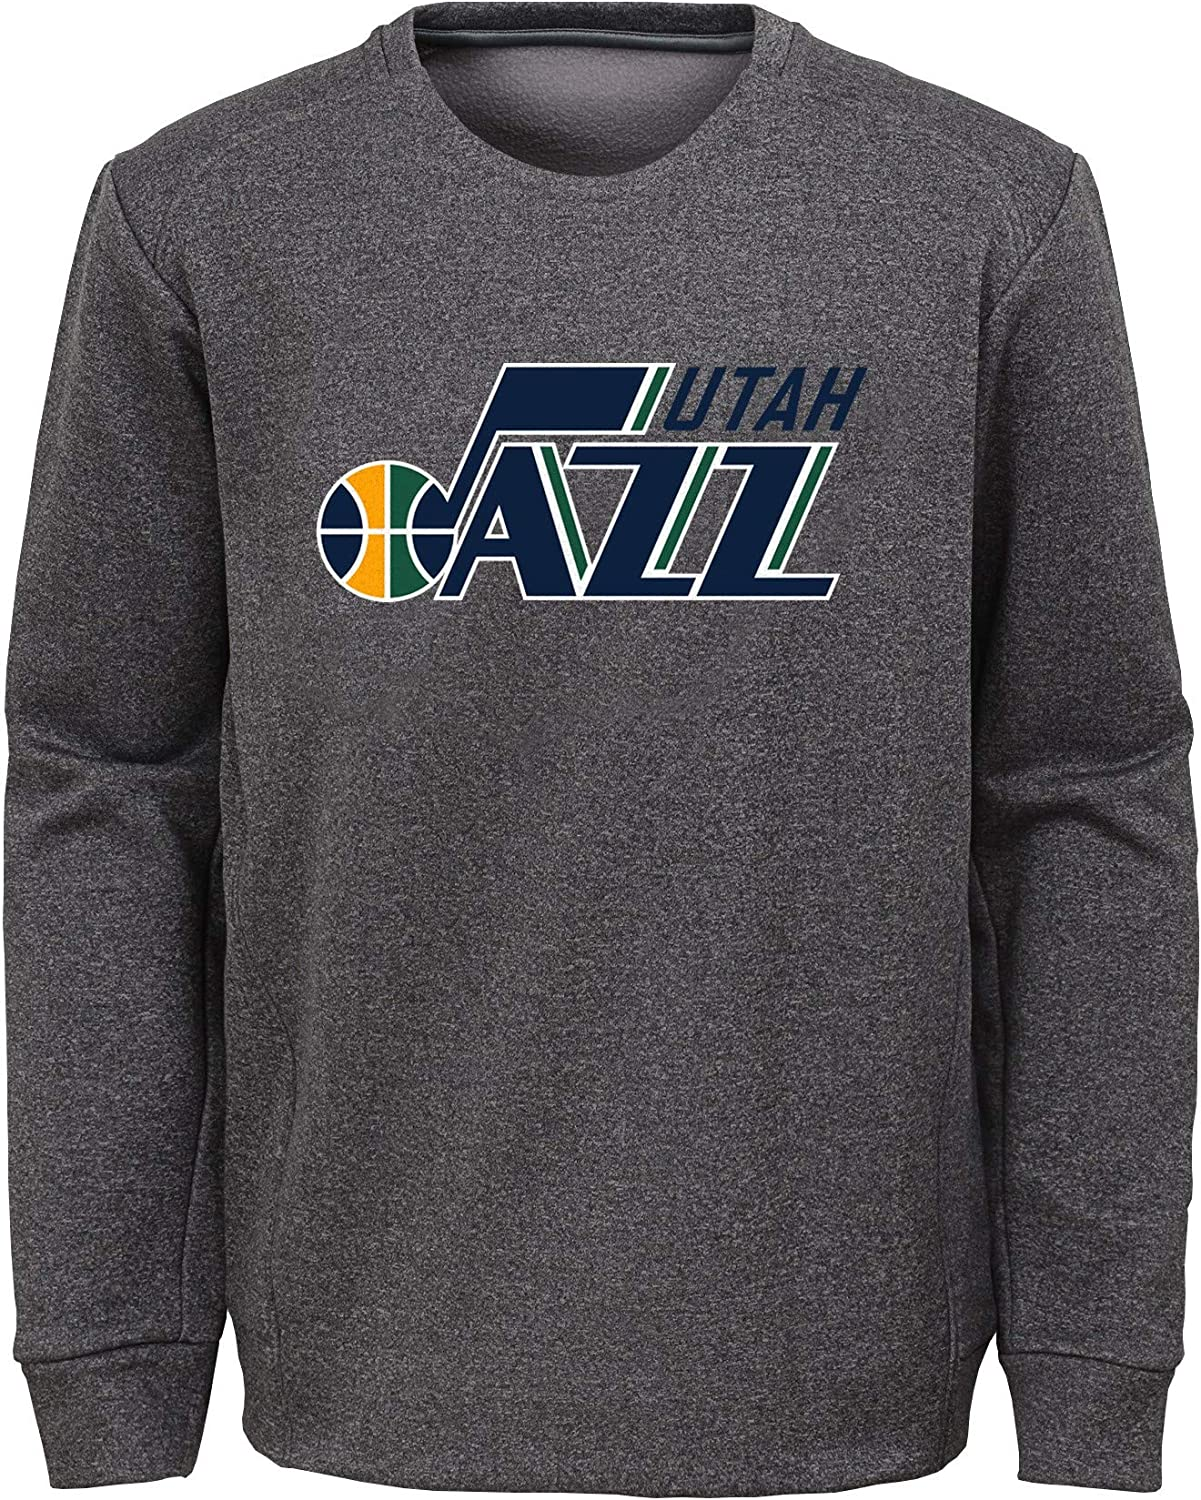 OuterStuff Youth NBA Heathered Gray Fleece Crew Sweatshirt